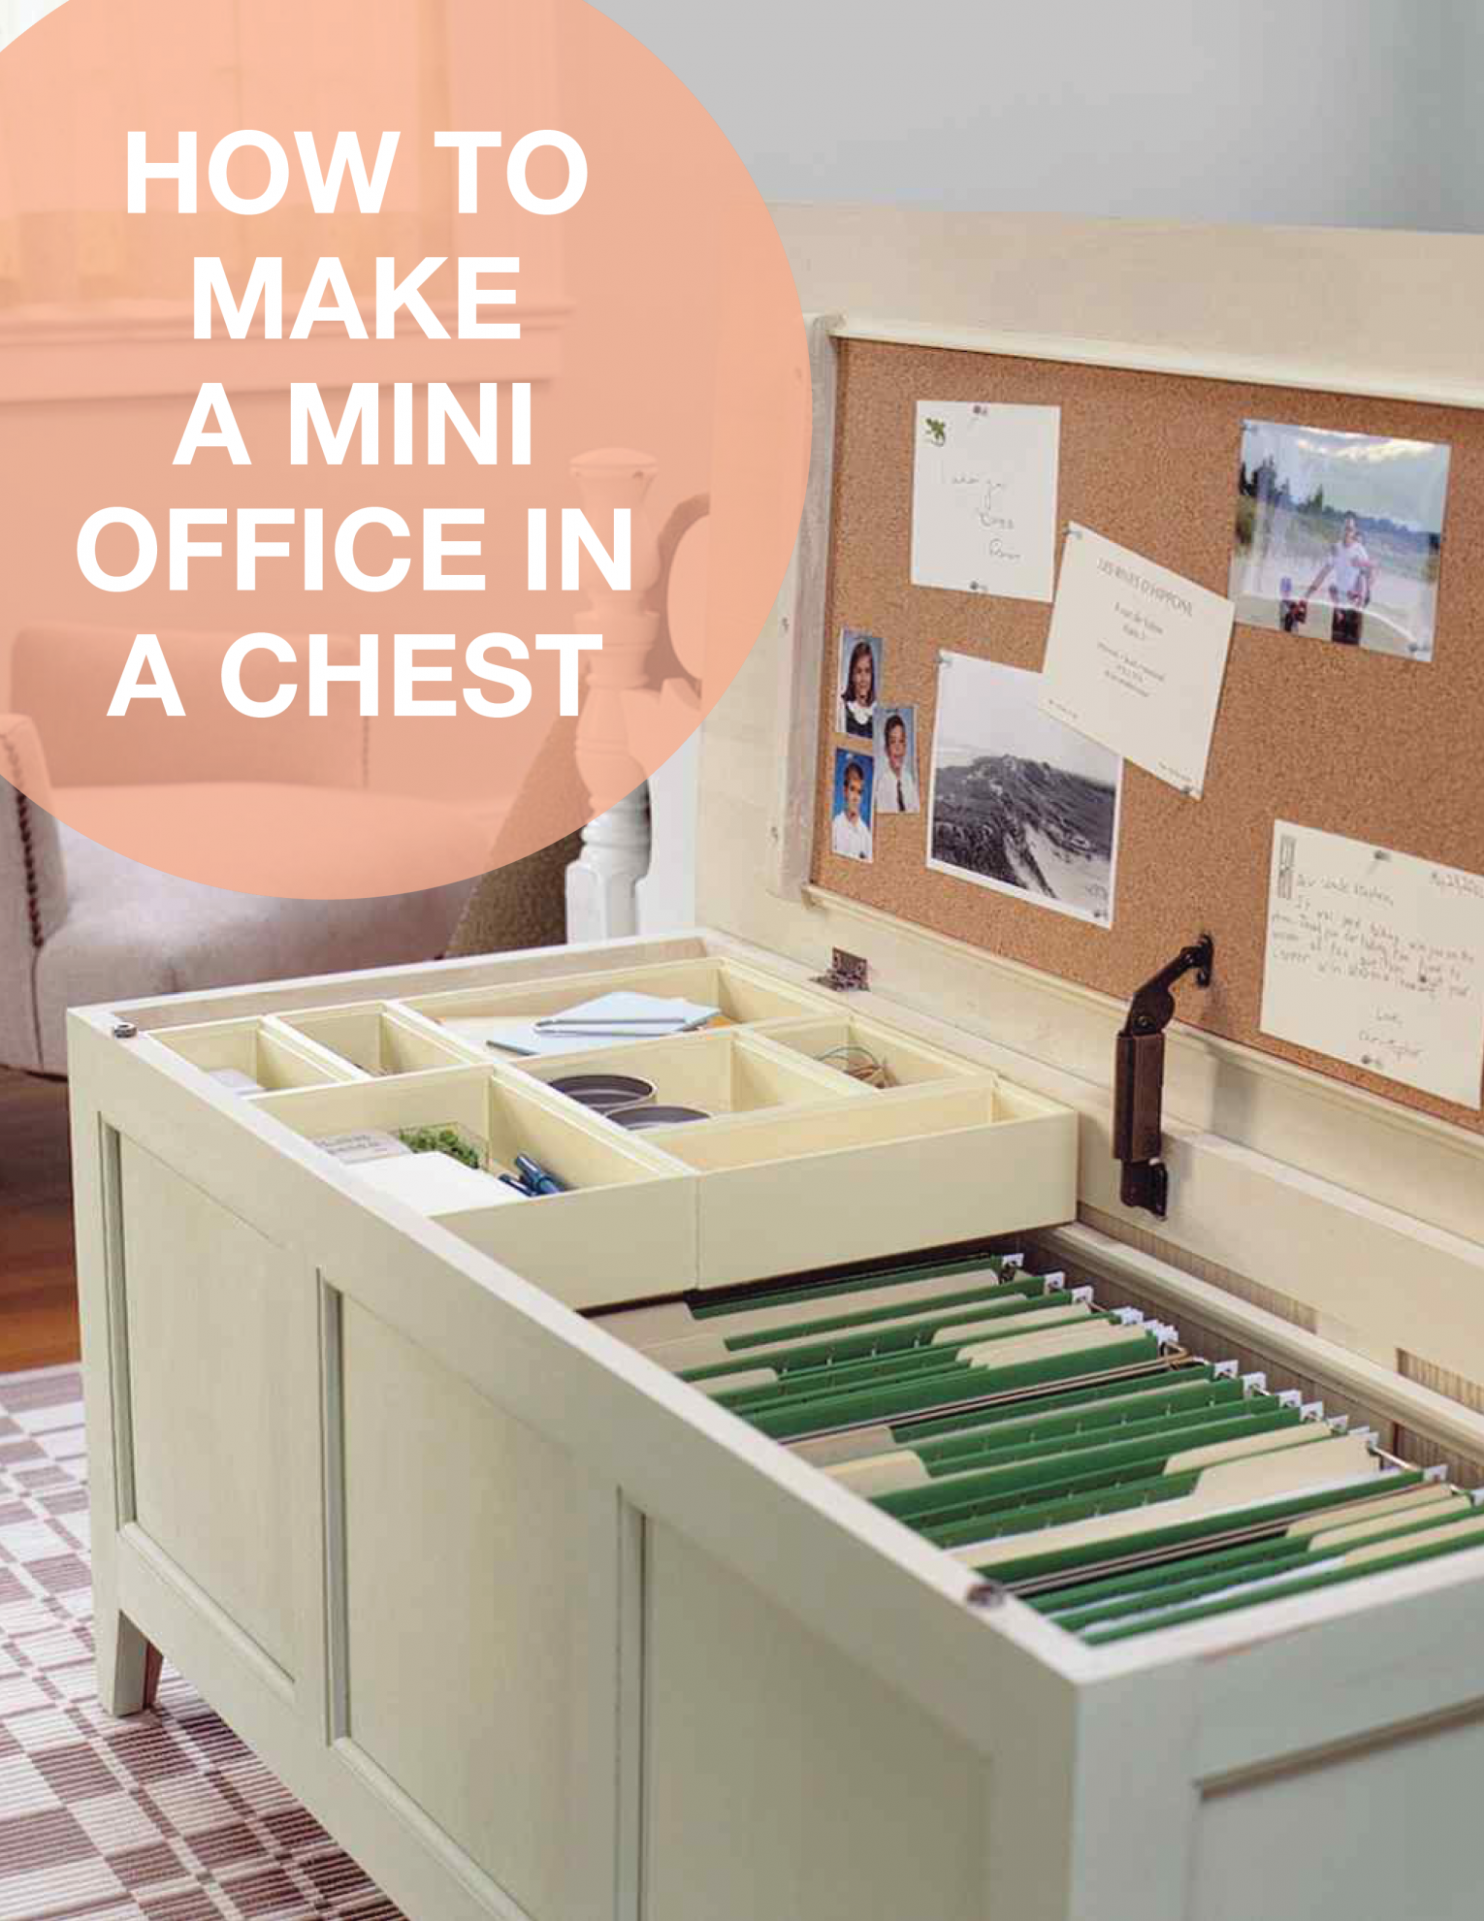 Mini Office in a Chest How-To  Home office organization, Office  - Home Office Organization Ideas